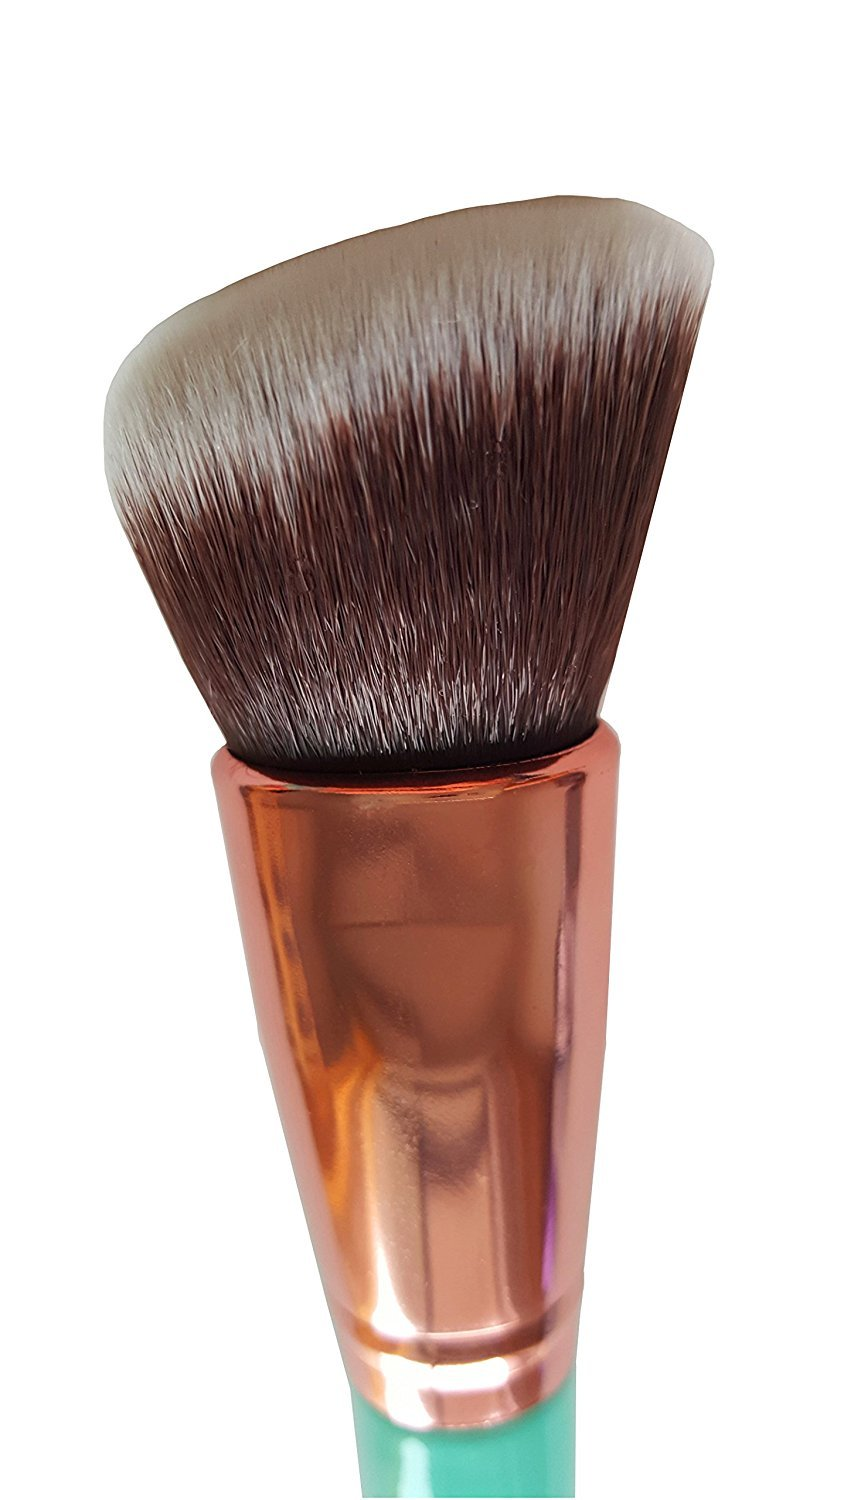 Mypreface Rose Golden Synthetic Blush and Bronzer Brush - Angled Kabuki Makeup Brush: Foundation Brush Perfect for Face Contouring and Highlighting with Creams and Powders (Blue): Beauty